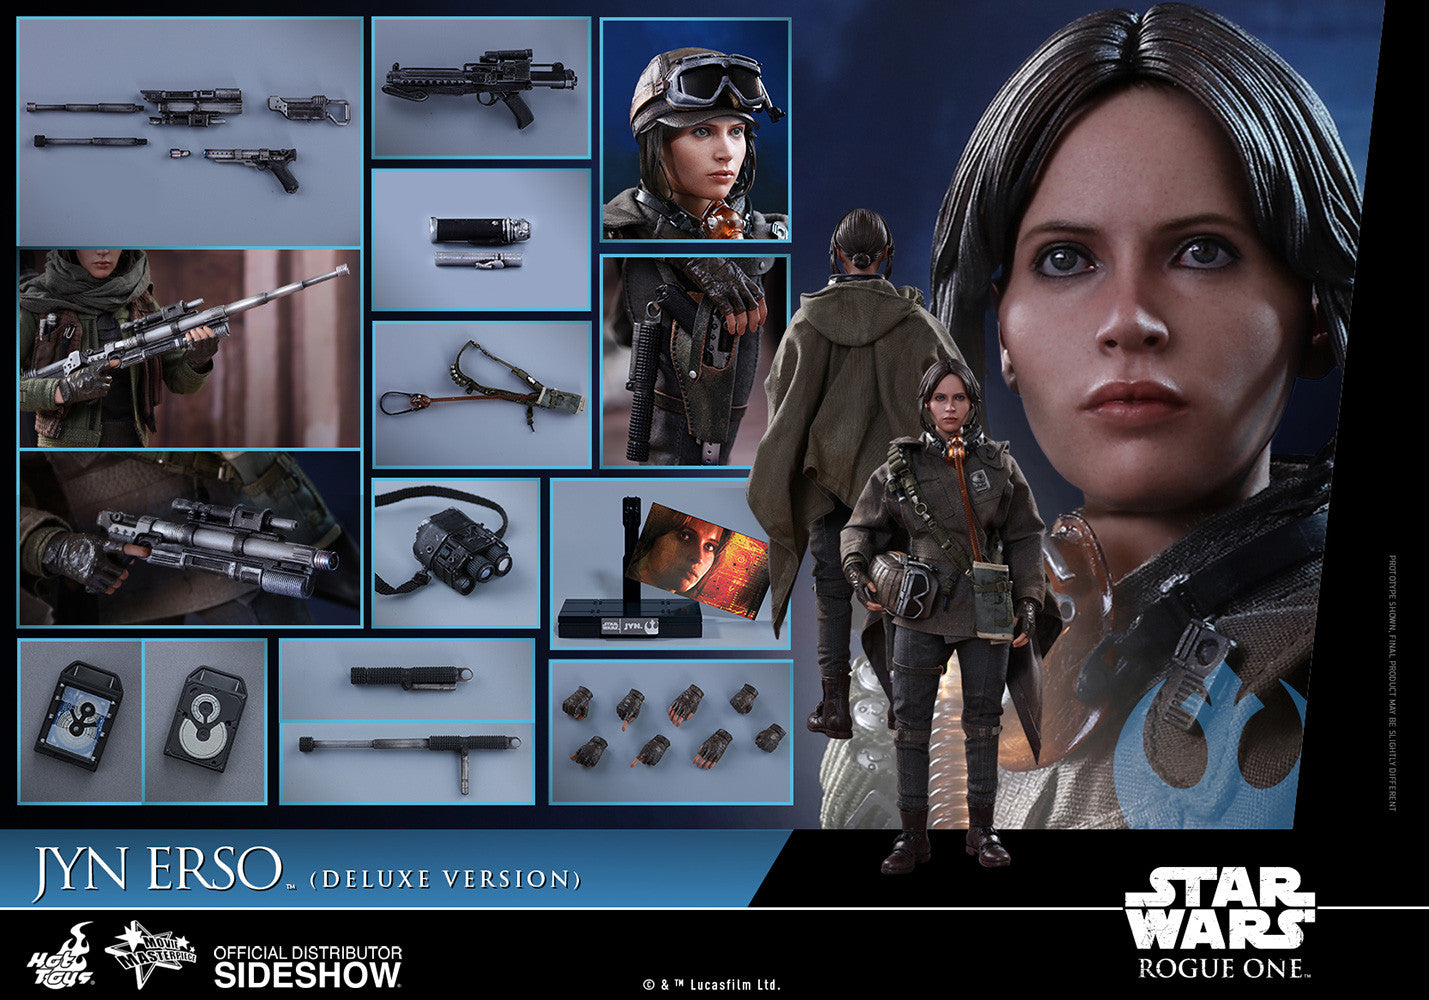 Hot toys Jyn Erso (Deluxe Version)